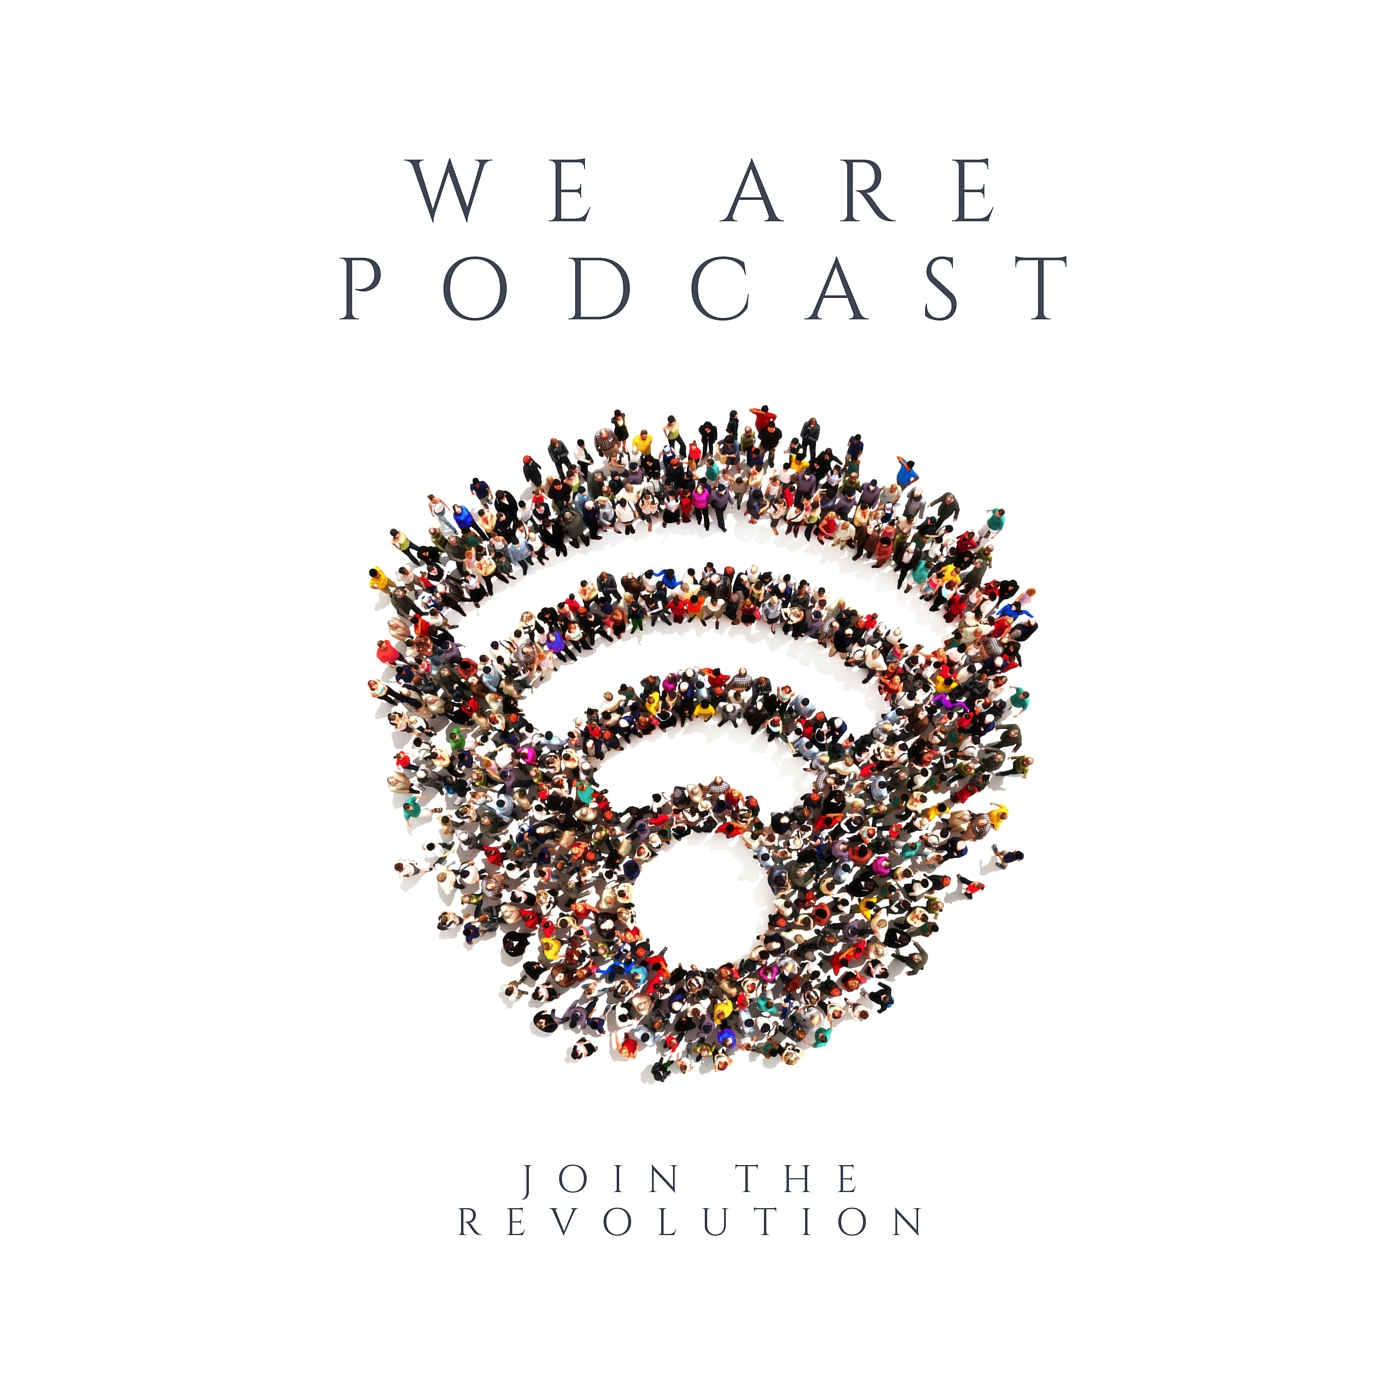 Podcast Revolution | Building a following through the power of authentic connection